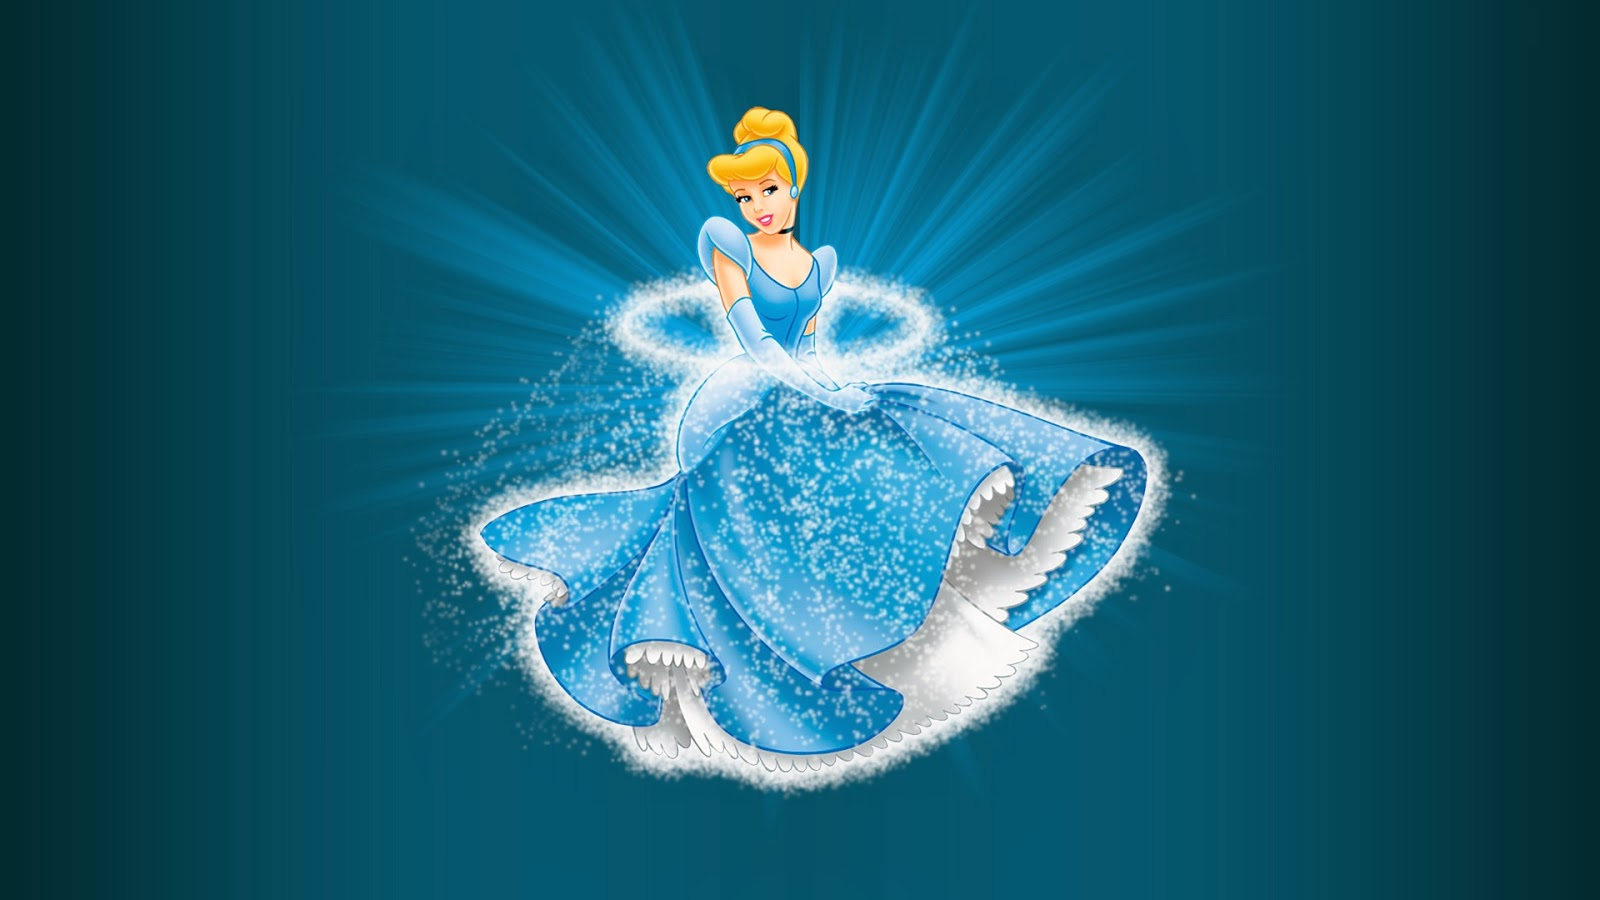 disney hd wallpapers cinderella hd wallpapers